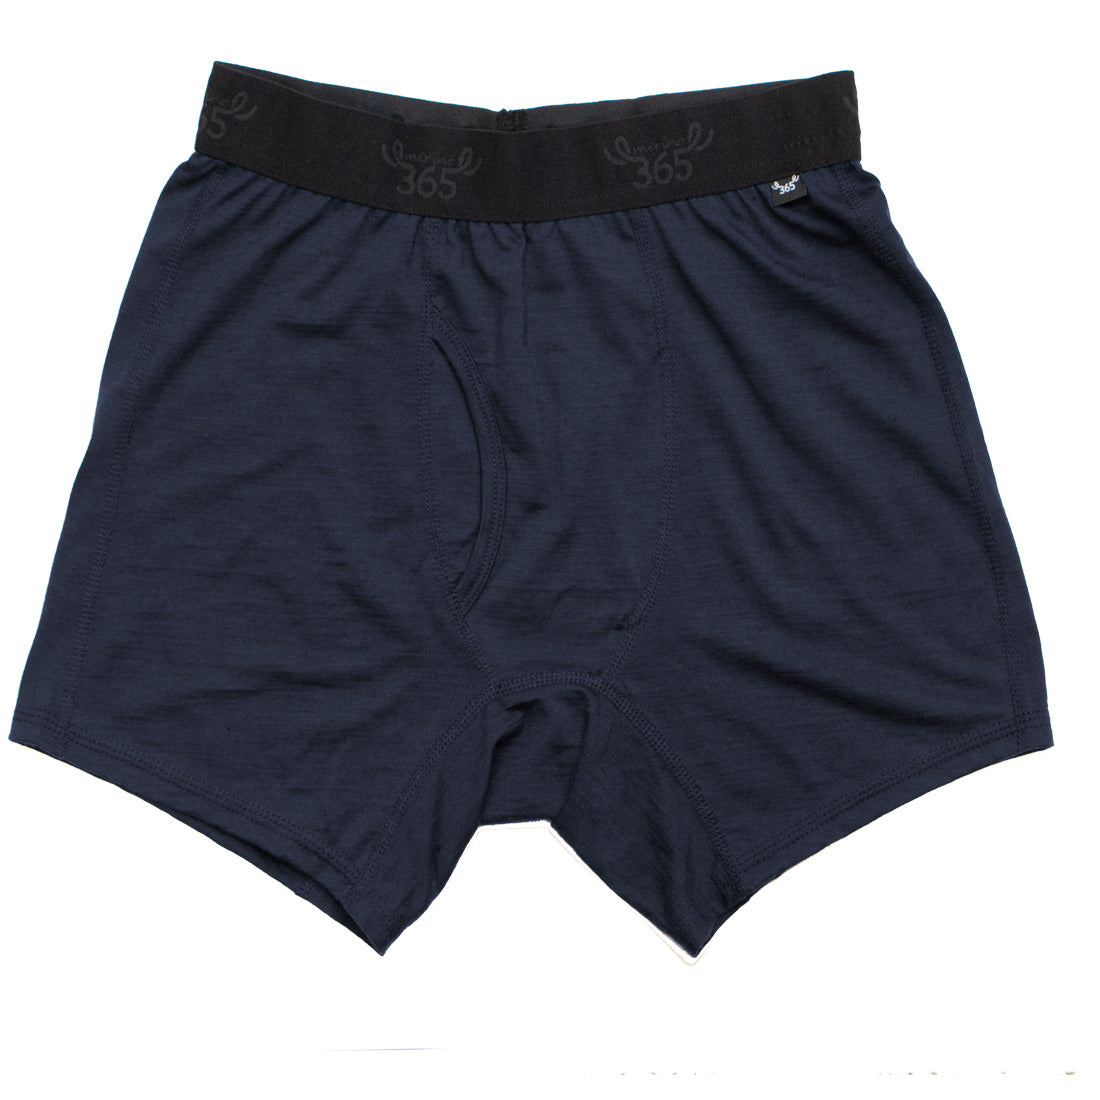 Merino 365 Men's Boxer Brief with Fly, Navy